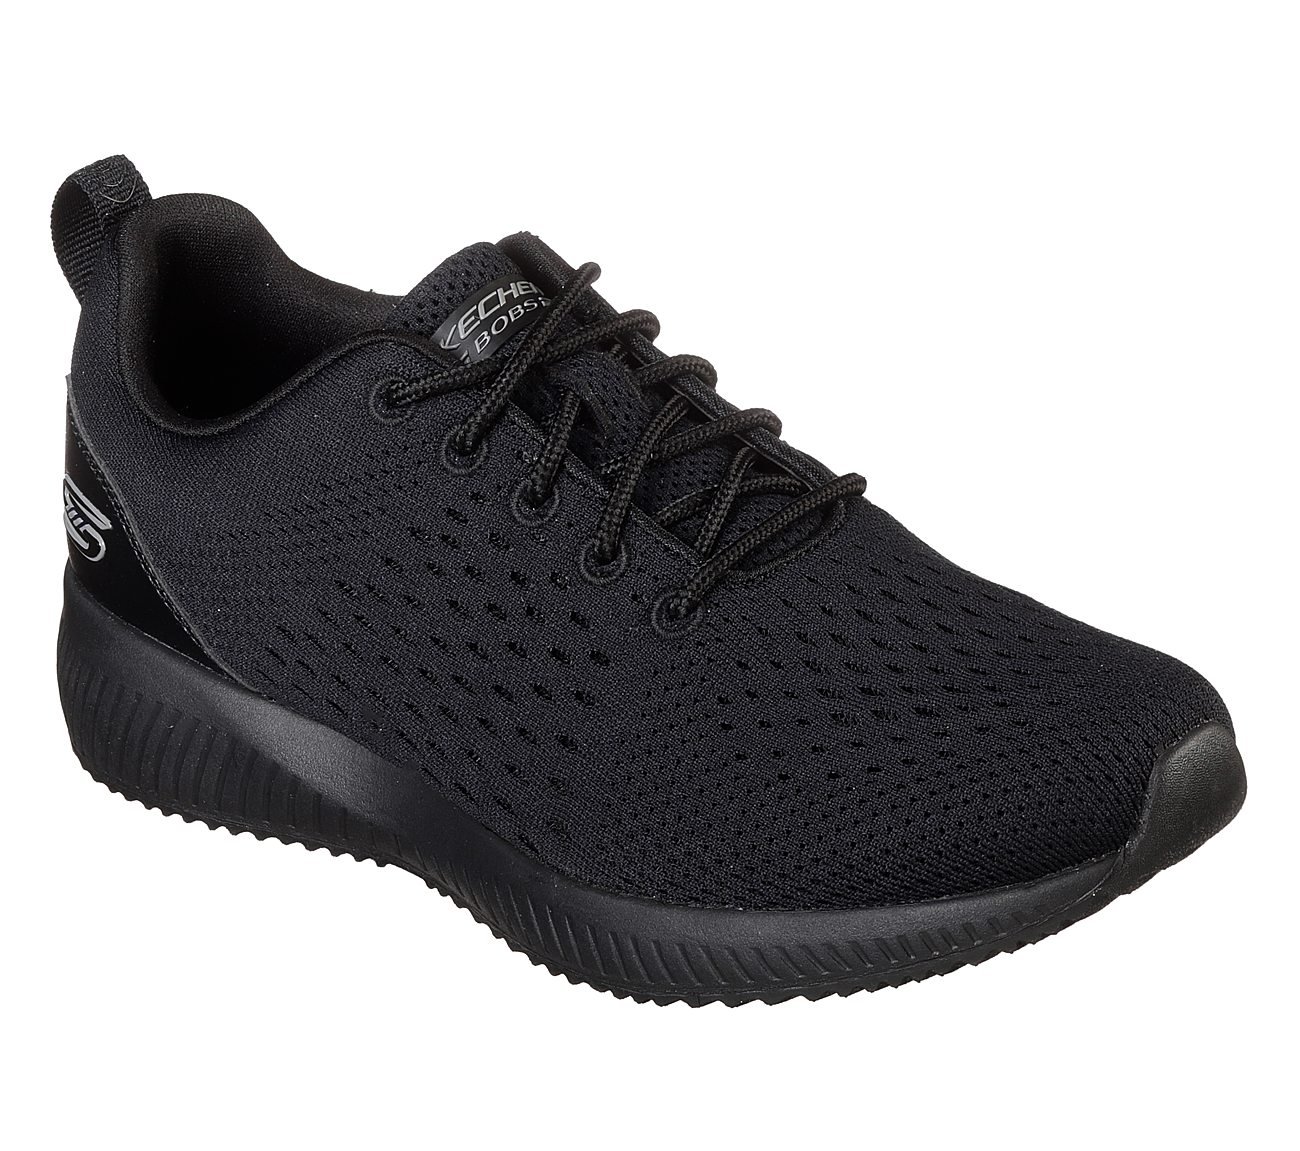 862bbf9b6aba Buy SKECHERS BOBS Sport Squad - Ultraviolet BOBS Shoes only  55.00